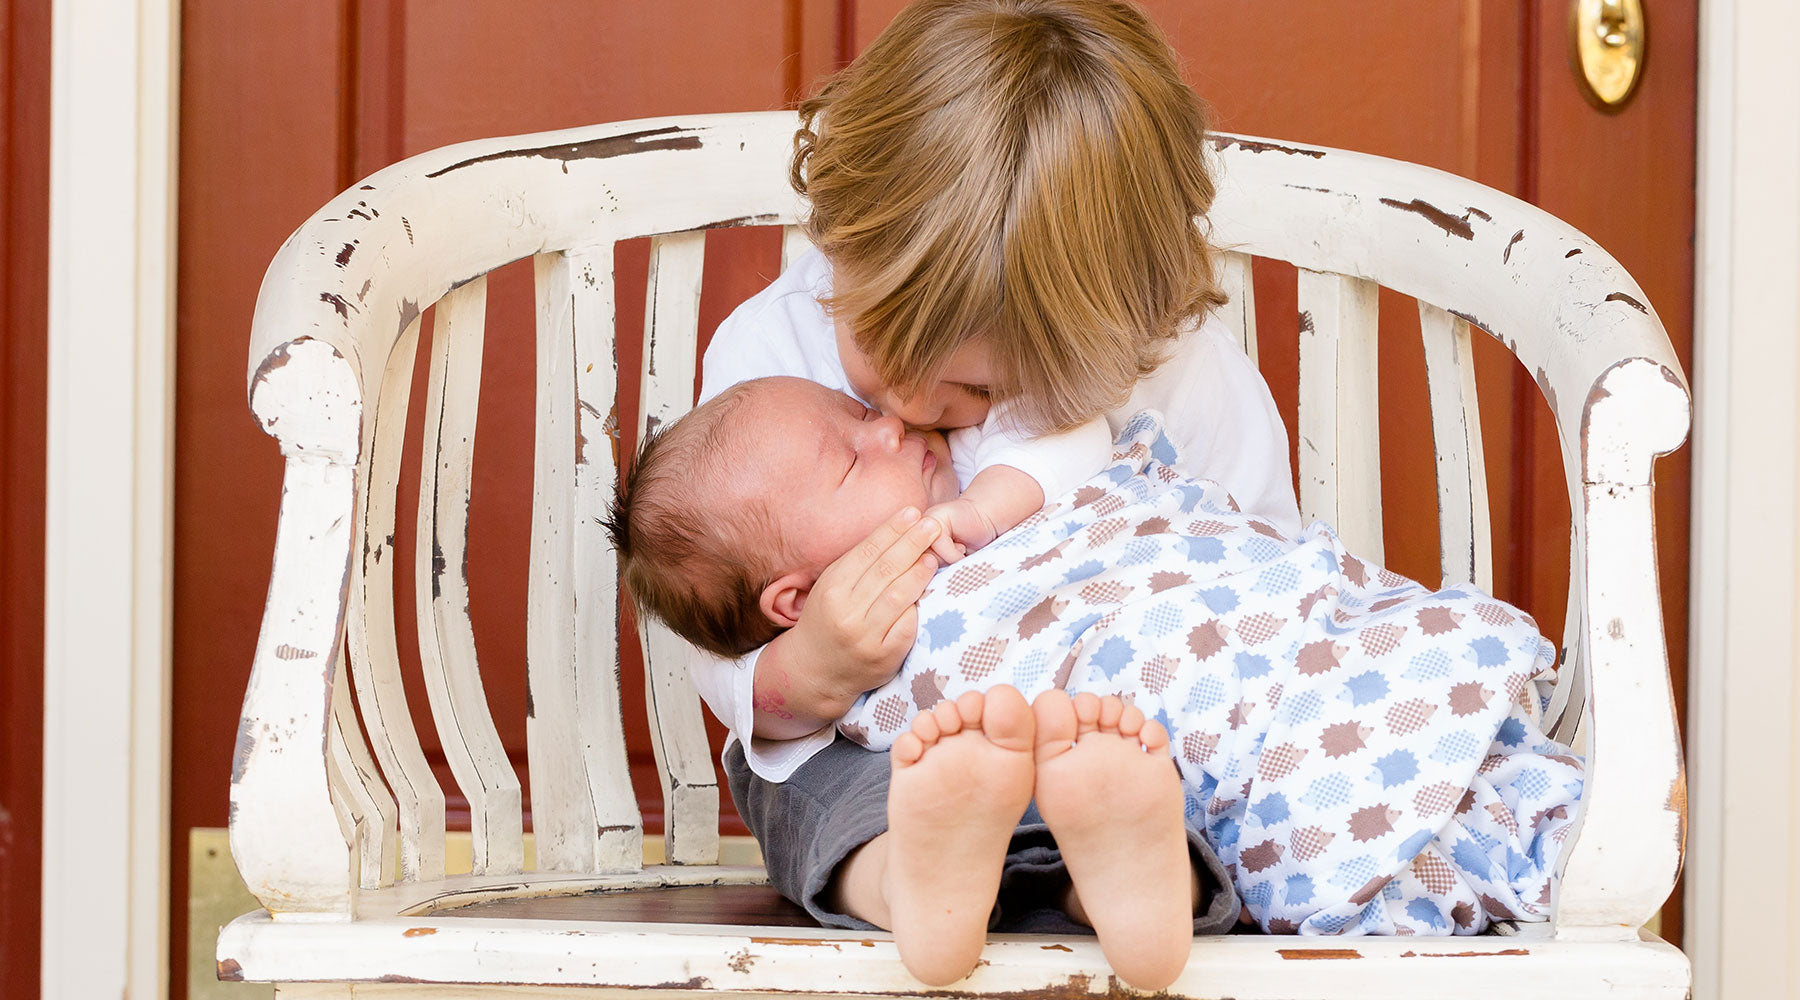 Older brother kissing newborn sibling